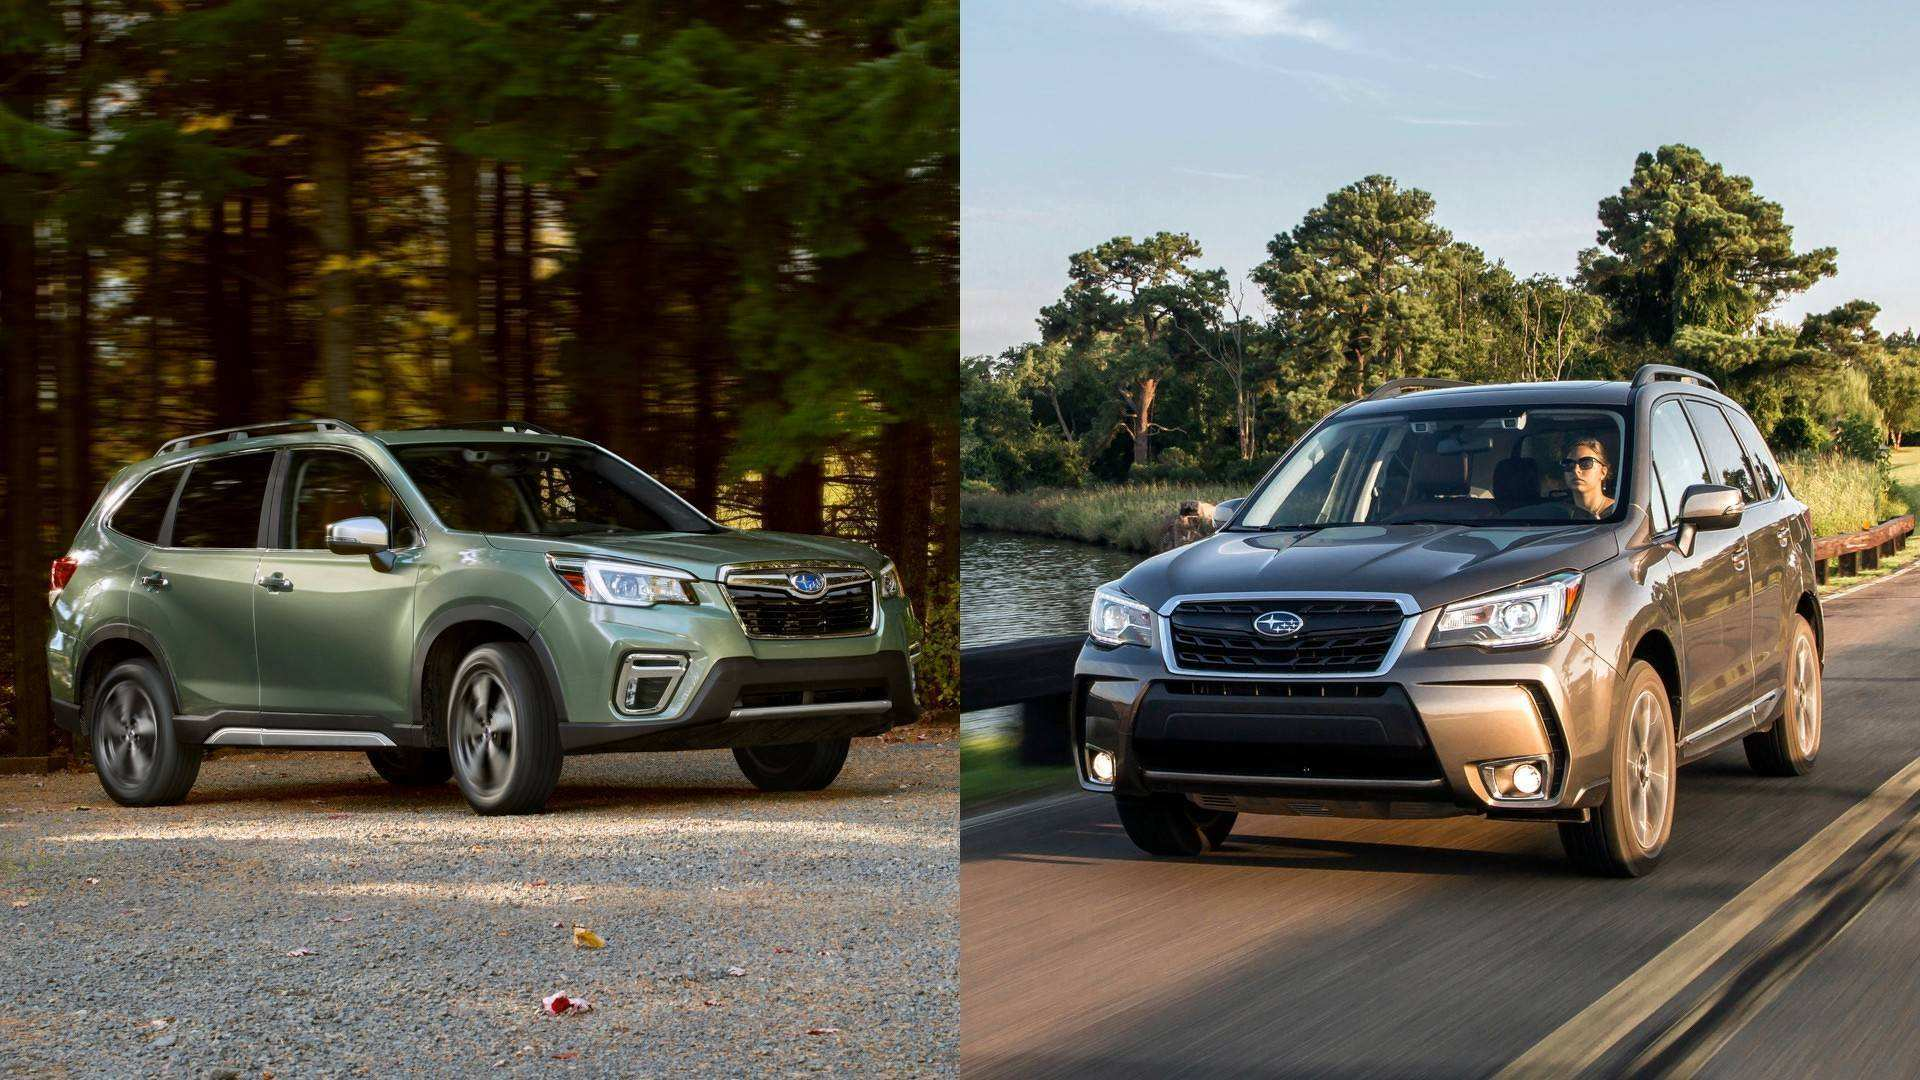 78 All New 2019 Subaru Forester Design Review for 2019 Subaru Forester Design